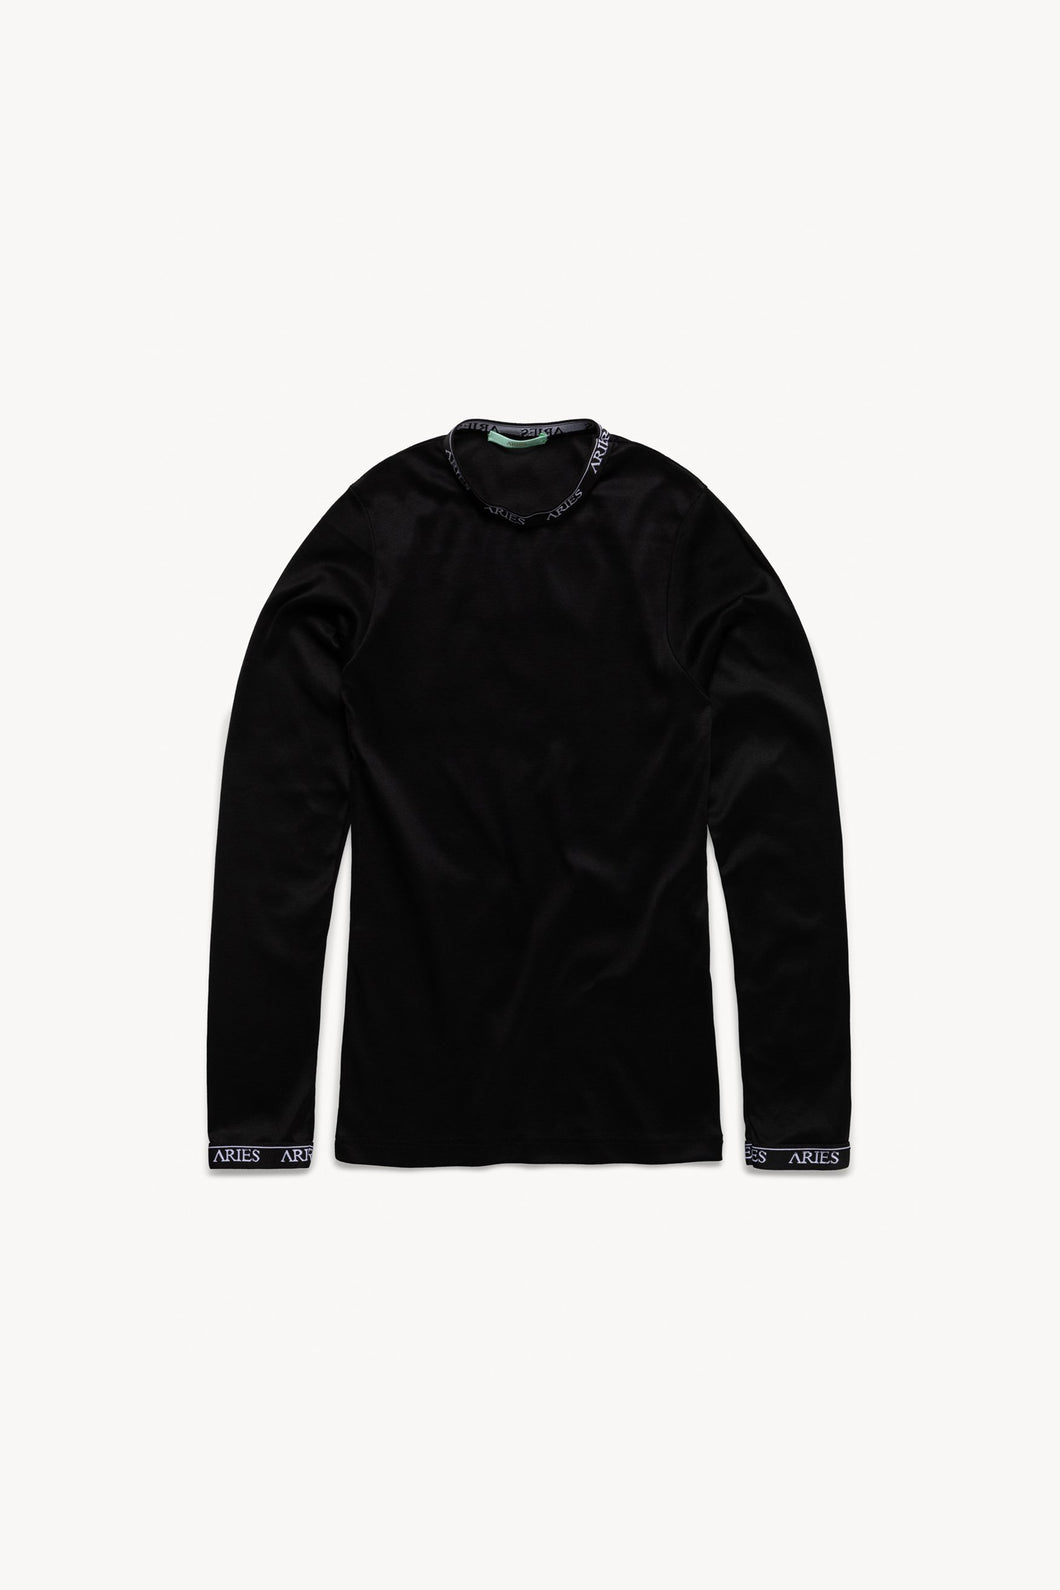 Aries Cotton Long Sleeve Top